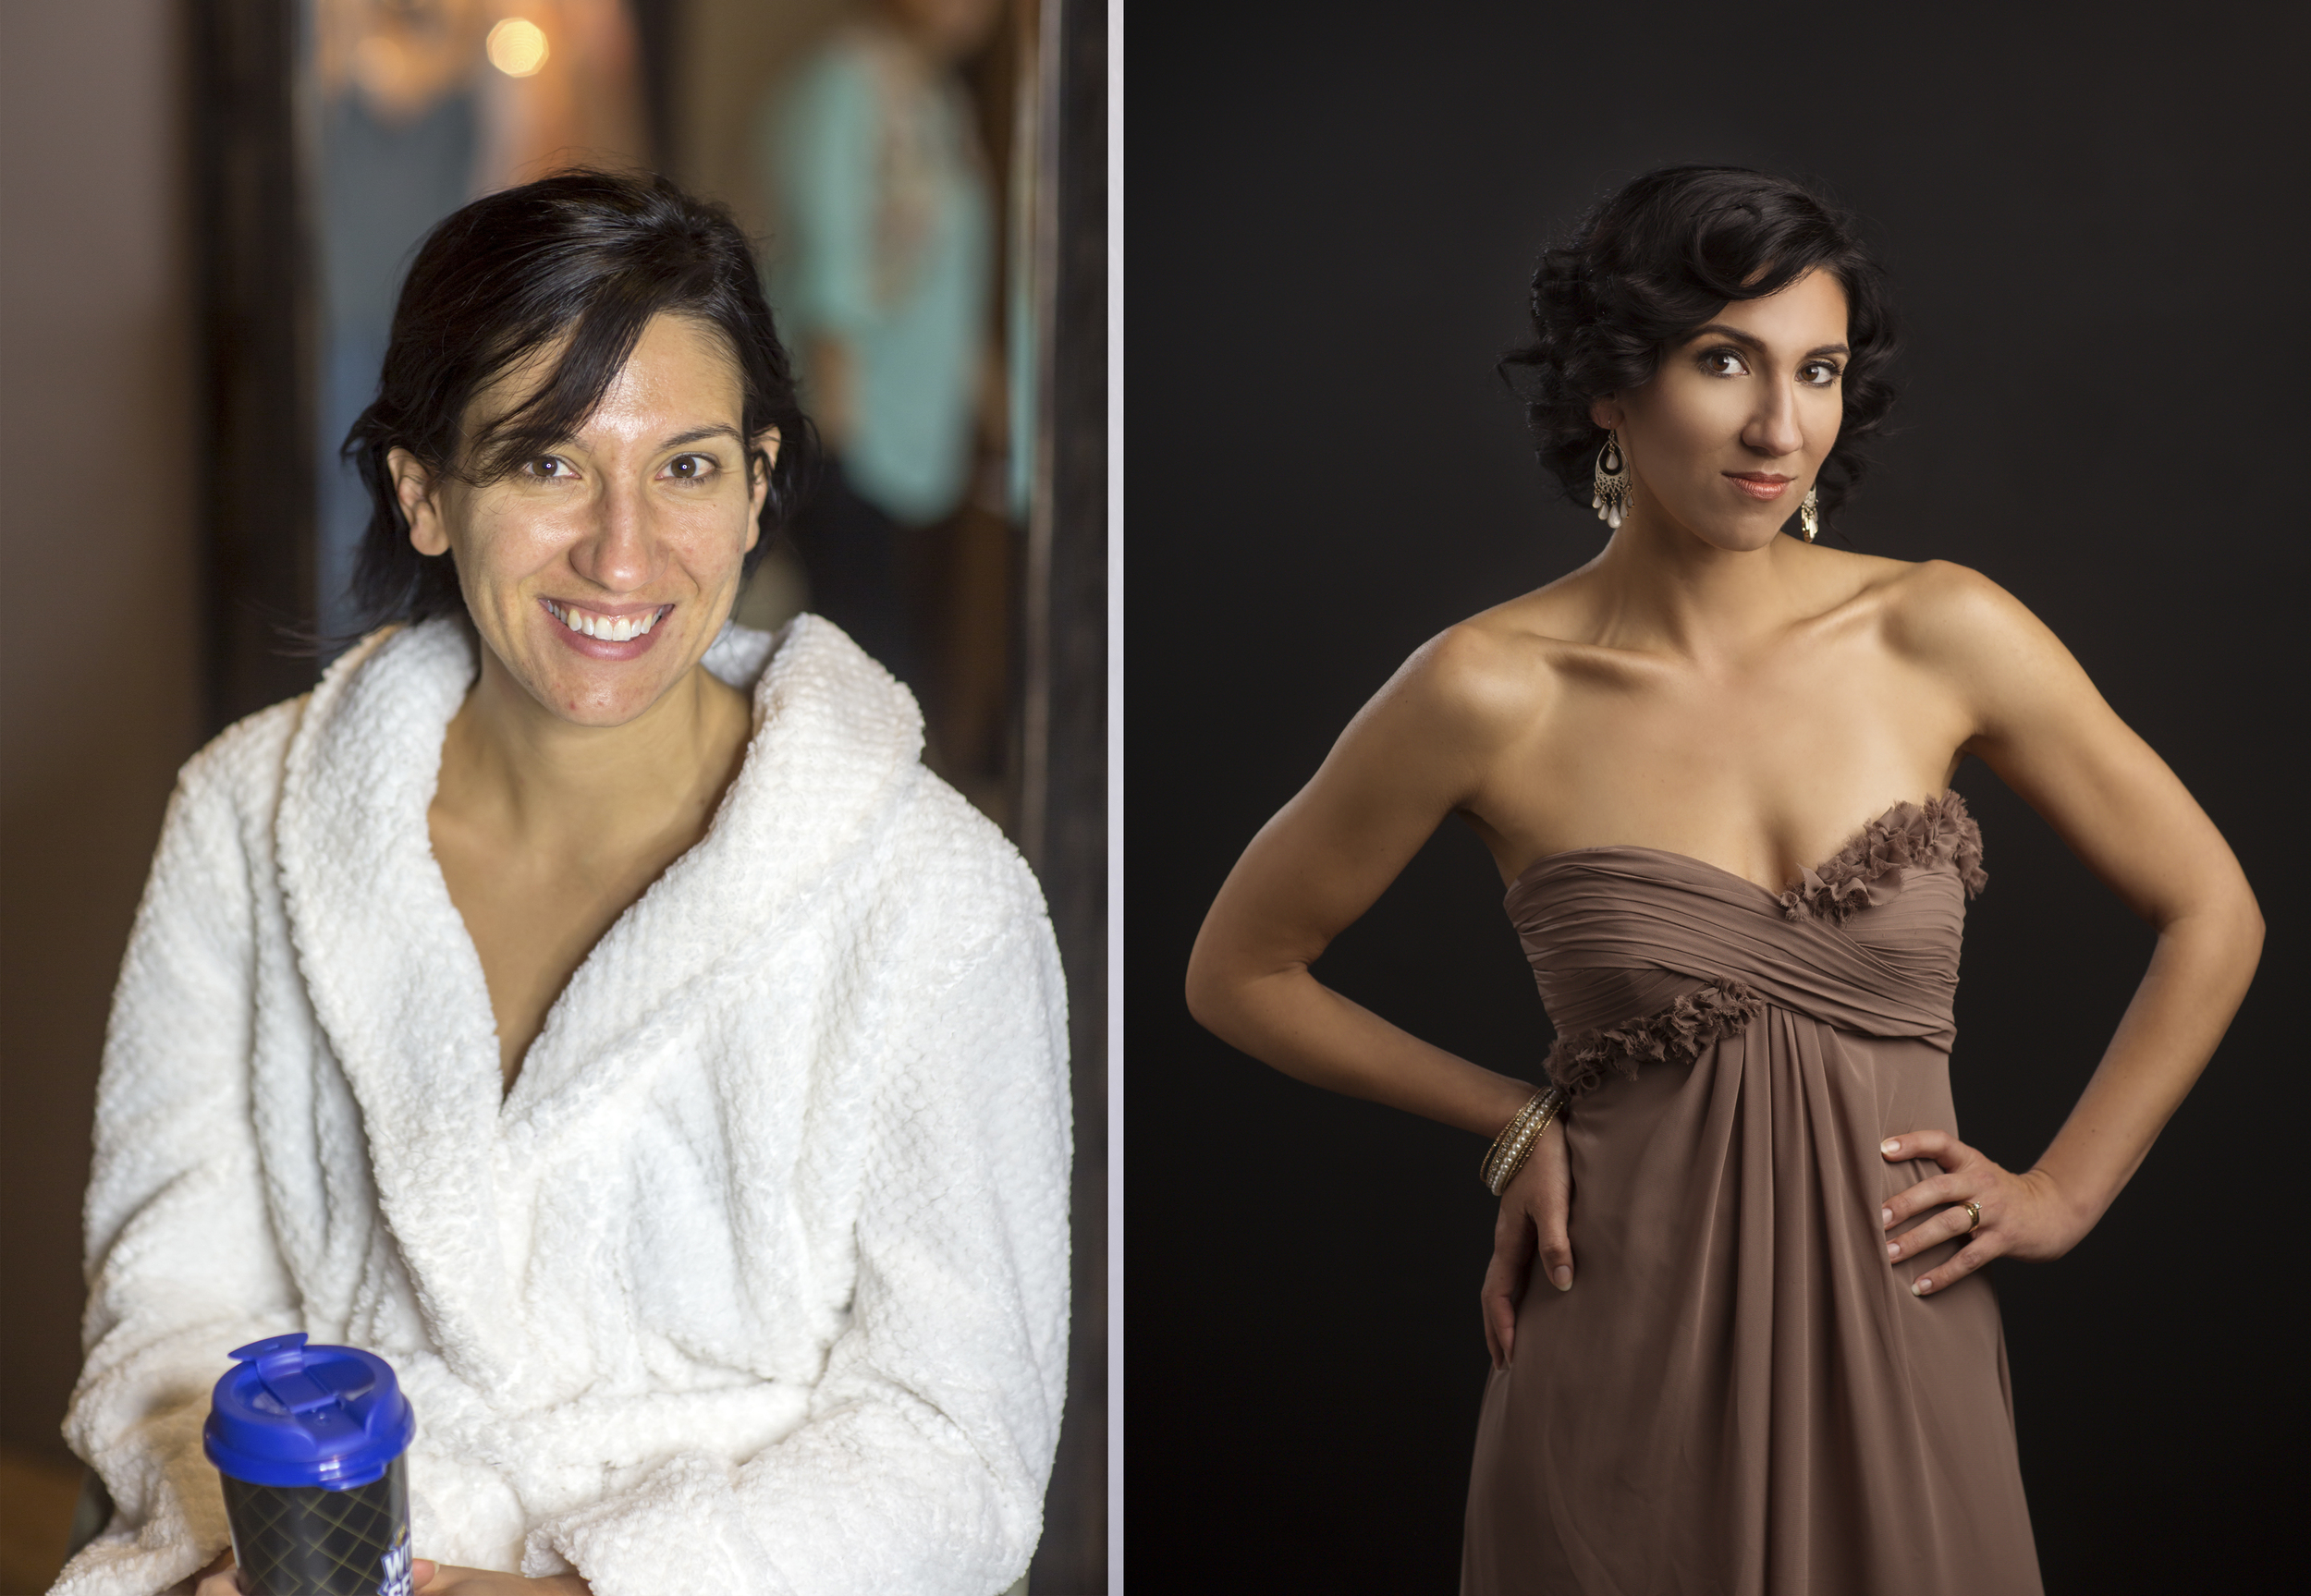 before after-1 bee posh logo portraits glamour kansas city boudoir photographer-5.jpg